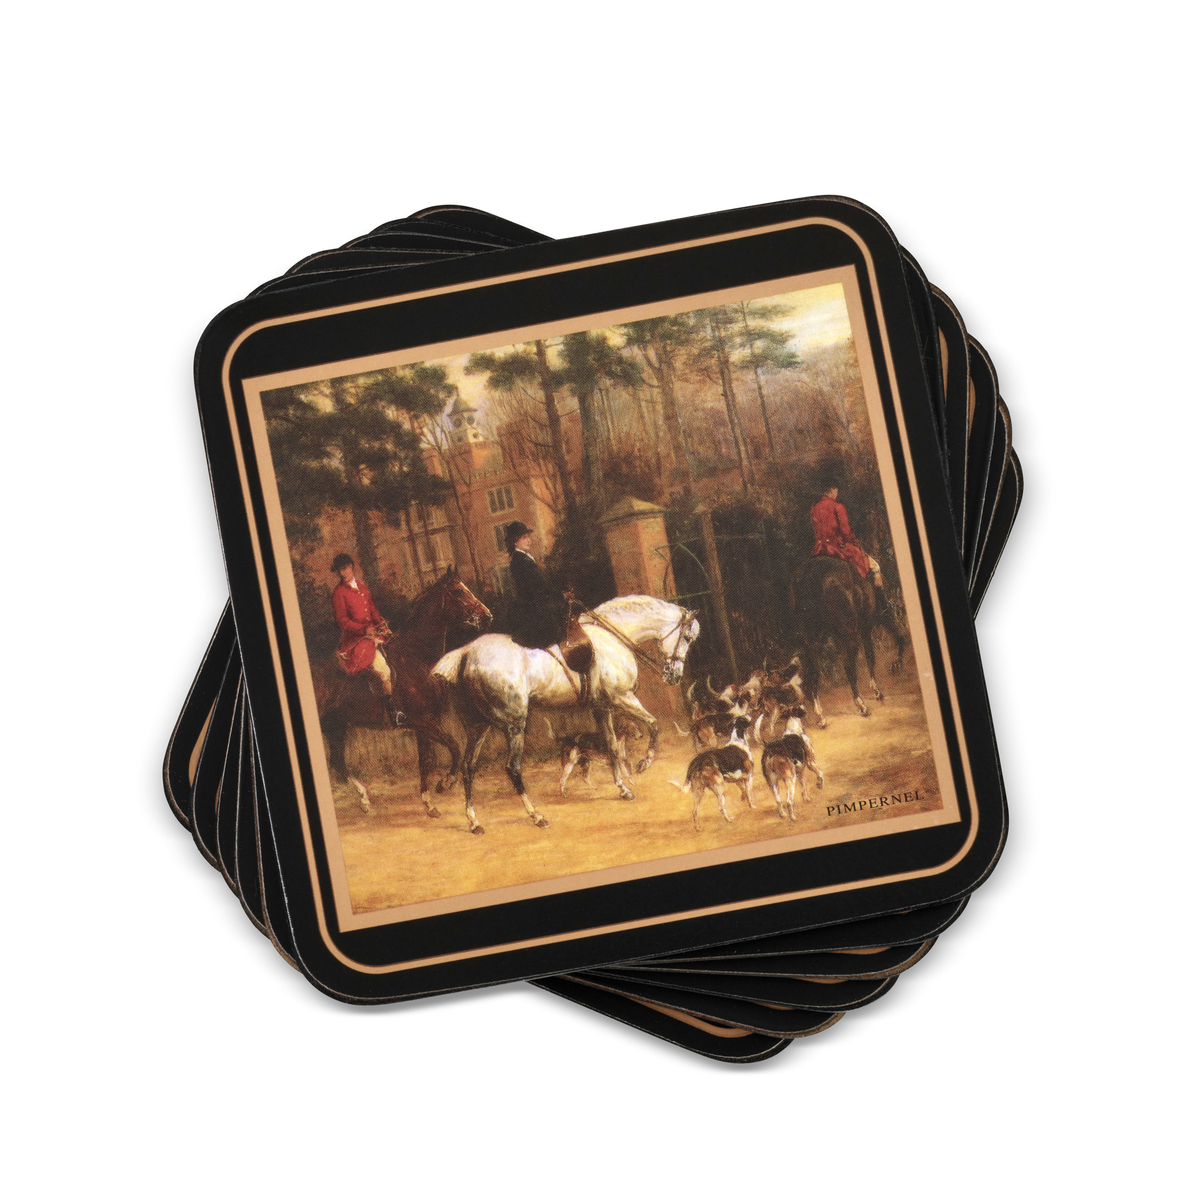 Pimpernel Tally Ho Coasters Set of 6 image number 0